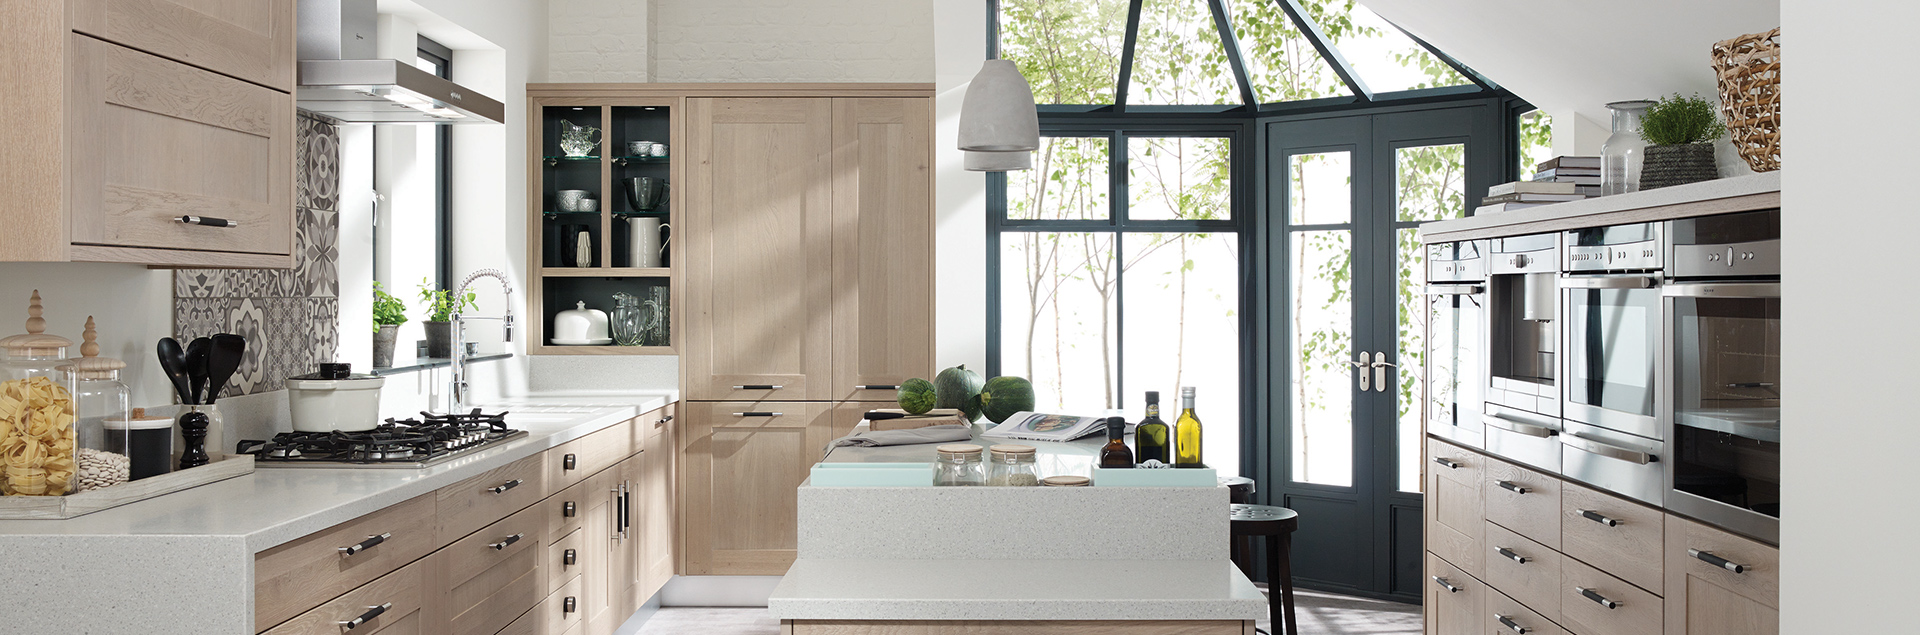 A large contemporary style kitchen, with solid oak shaker doors. Silestone surfaces, builtin Neff appliances, a large flexible spray tap and an island unit with space for dining.